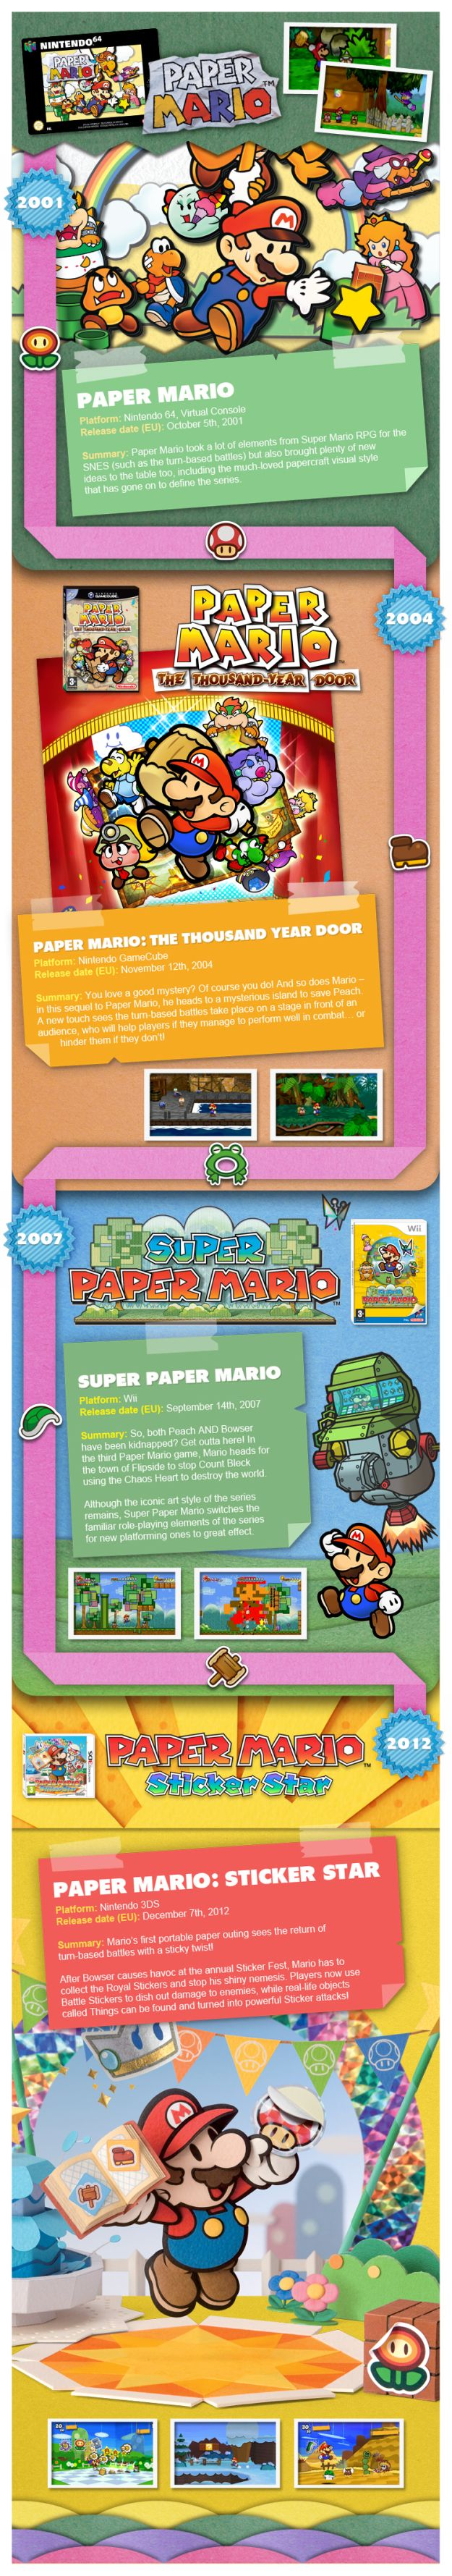 Love all the Paper Marios... Except the last one.... It blew... HARD CORE!!!